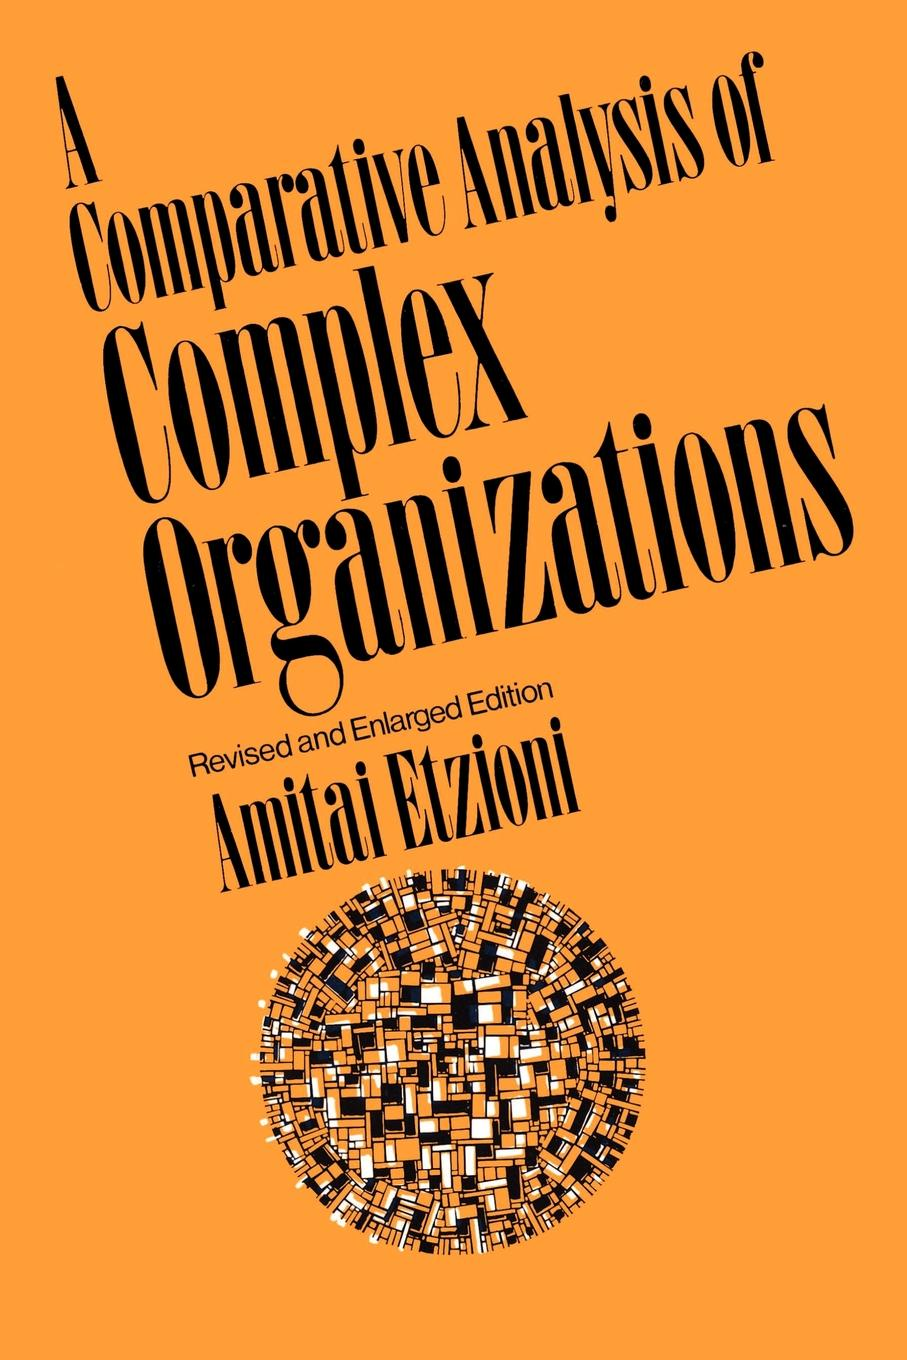 Фото - Amitai Etzioni A Comparative Analysis of Complex Organizations. On Power, Involvement, and Their Correlates geraldina edward psychosocial correlates of abstinence from sex